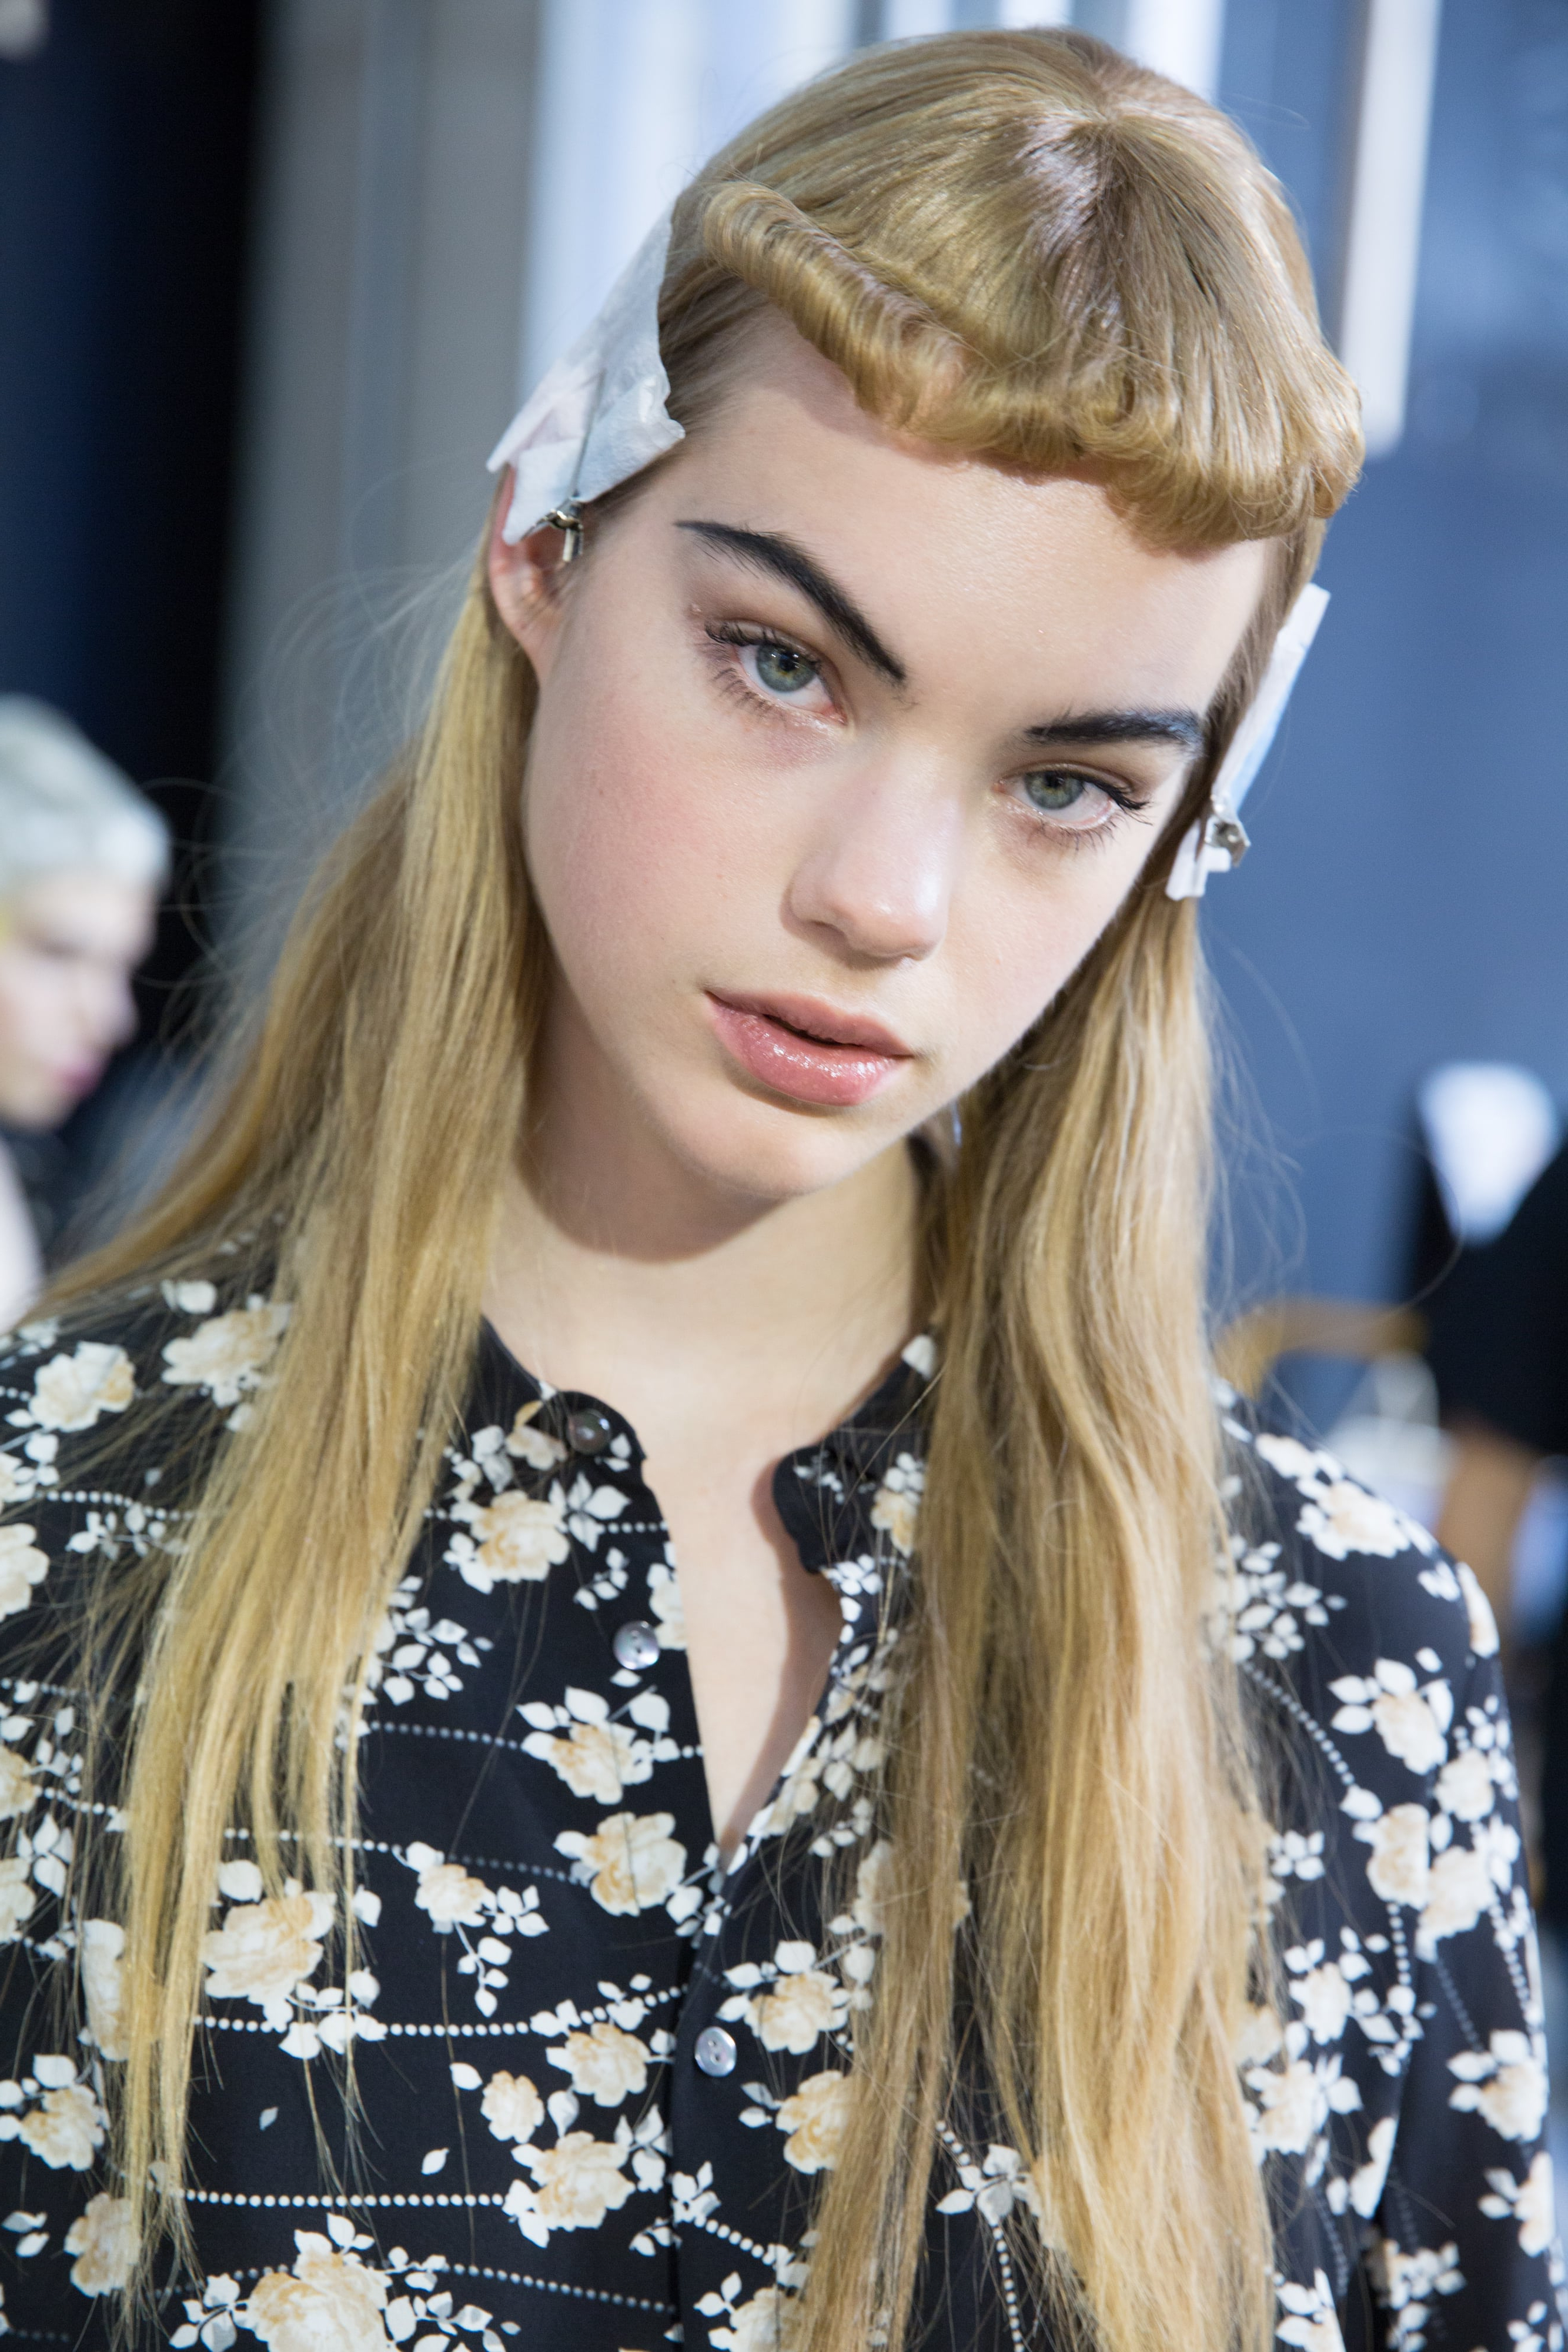 5 Cool Ways To Wear Short Bangs – Plus Need To Know Styling Tips Throughout Short Haircuts With Longer Bangs (View 9 of 25)